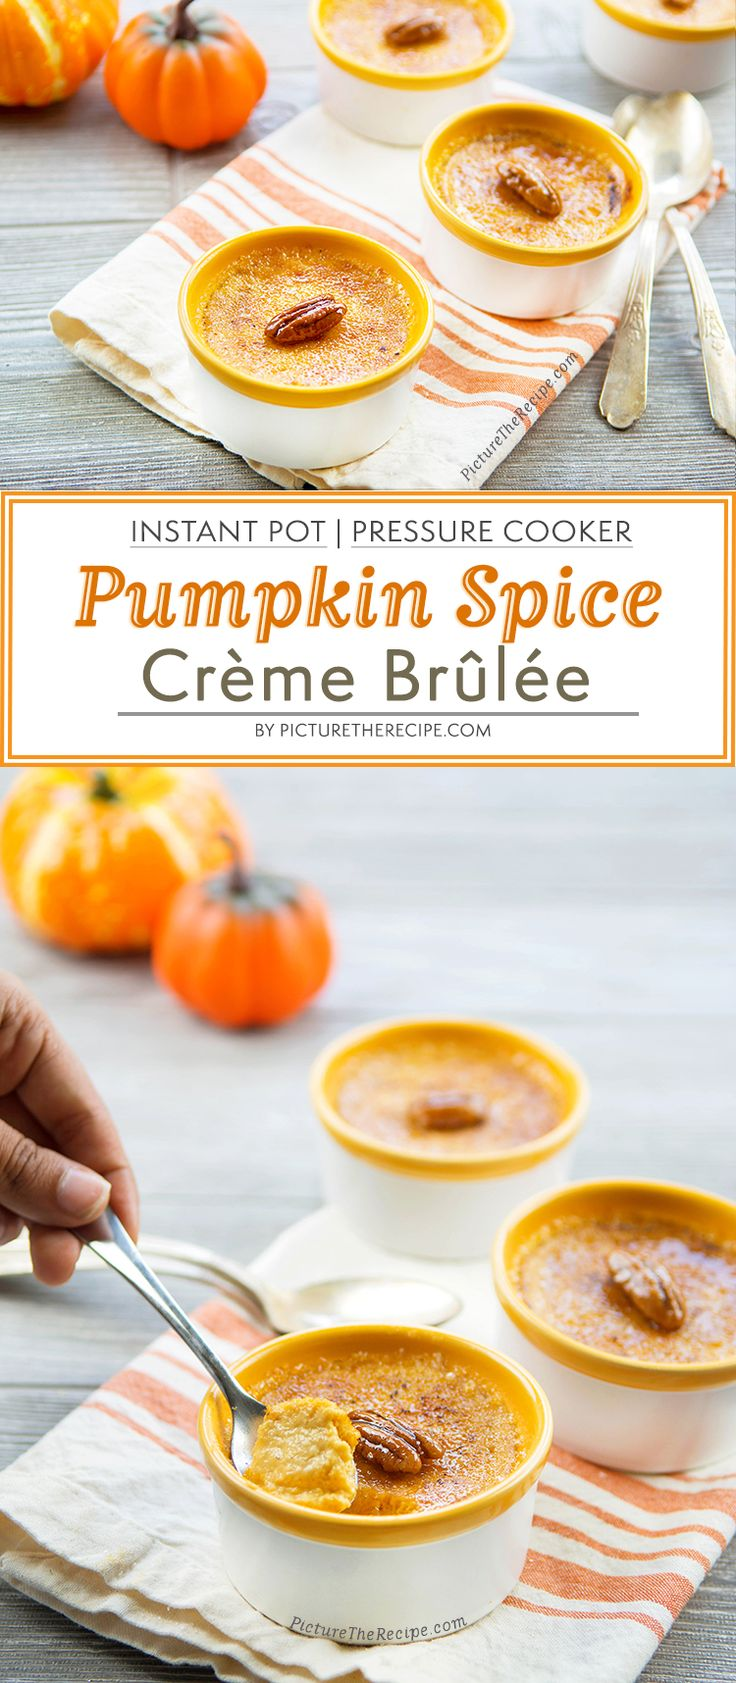 How To Make Pumpkin Spice Crème Brûlée